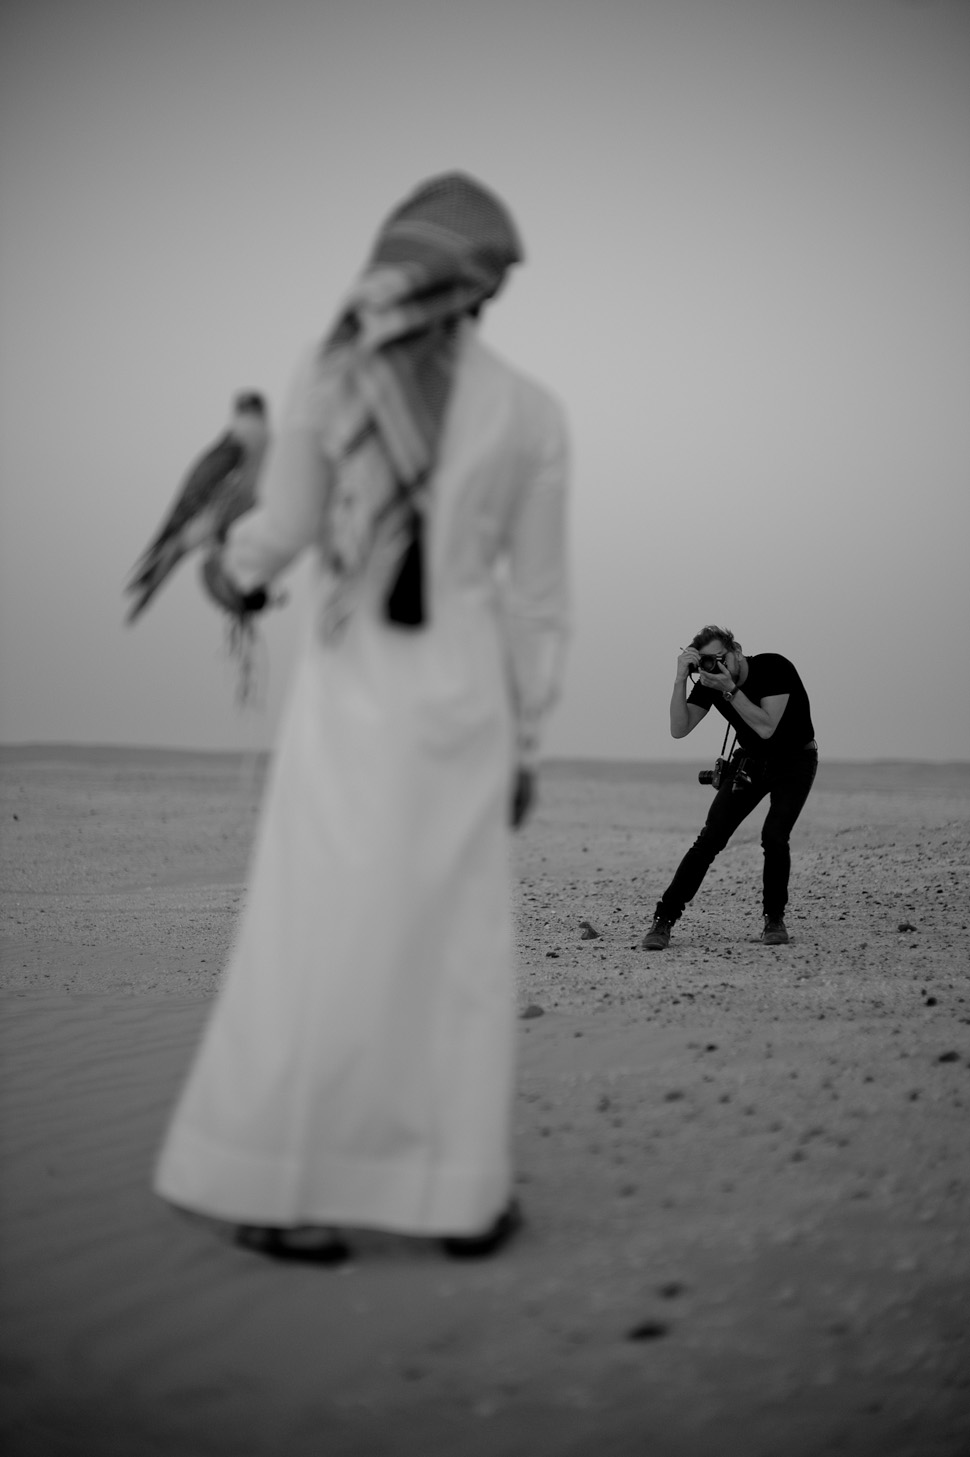 Thorsten Overgaard by Khalid Bin Hamad AL-Thani in the desert of Qatar. © 2013 Khalid Bin Hamad AL-Thani. All rights reserved. Leica M9 Hermes with Leica 50mm Noctilux-M ASPH f/0.95